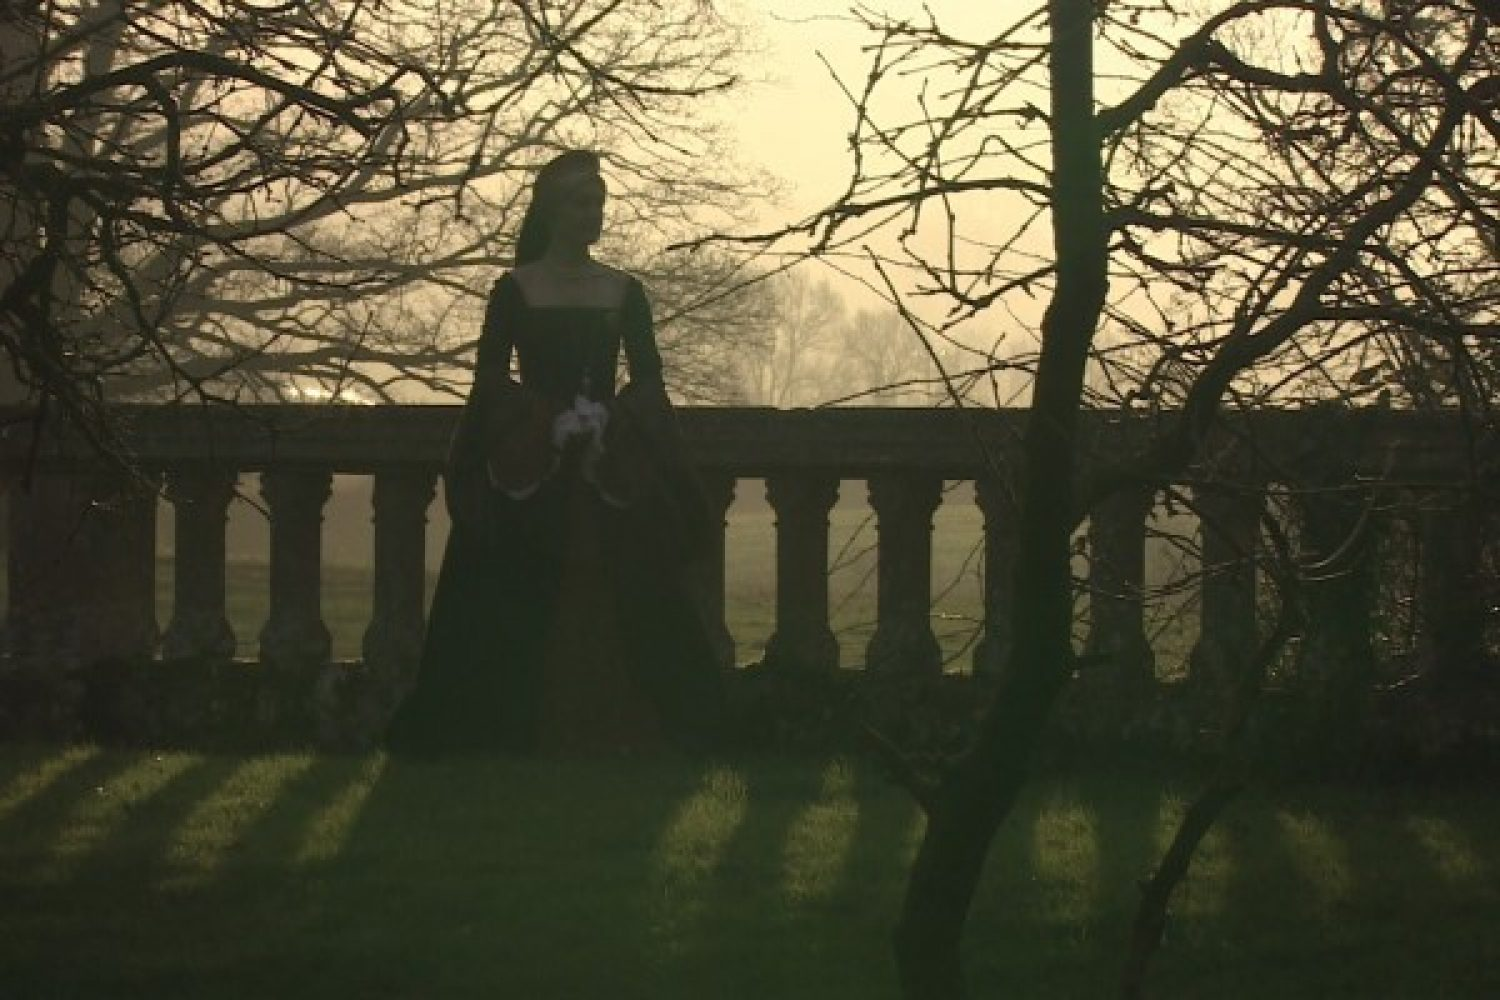 An image depicting the ghost of Katherine Parr